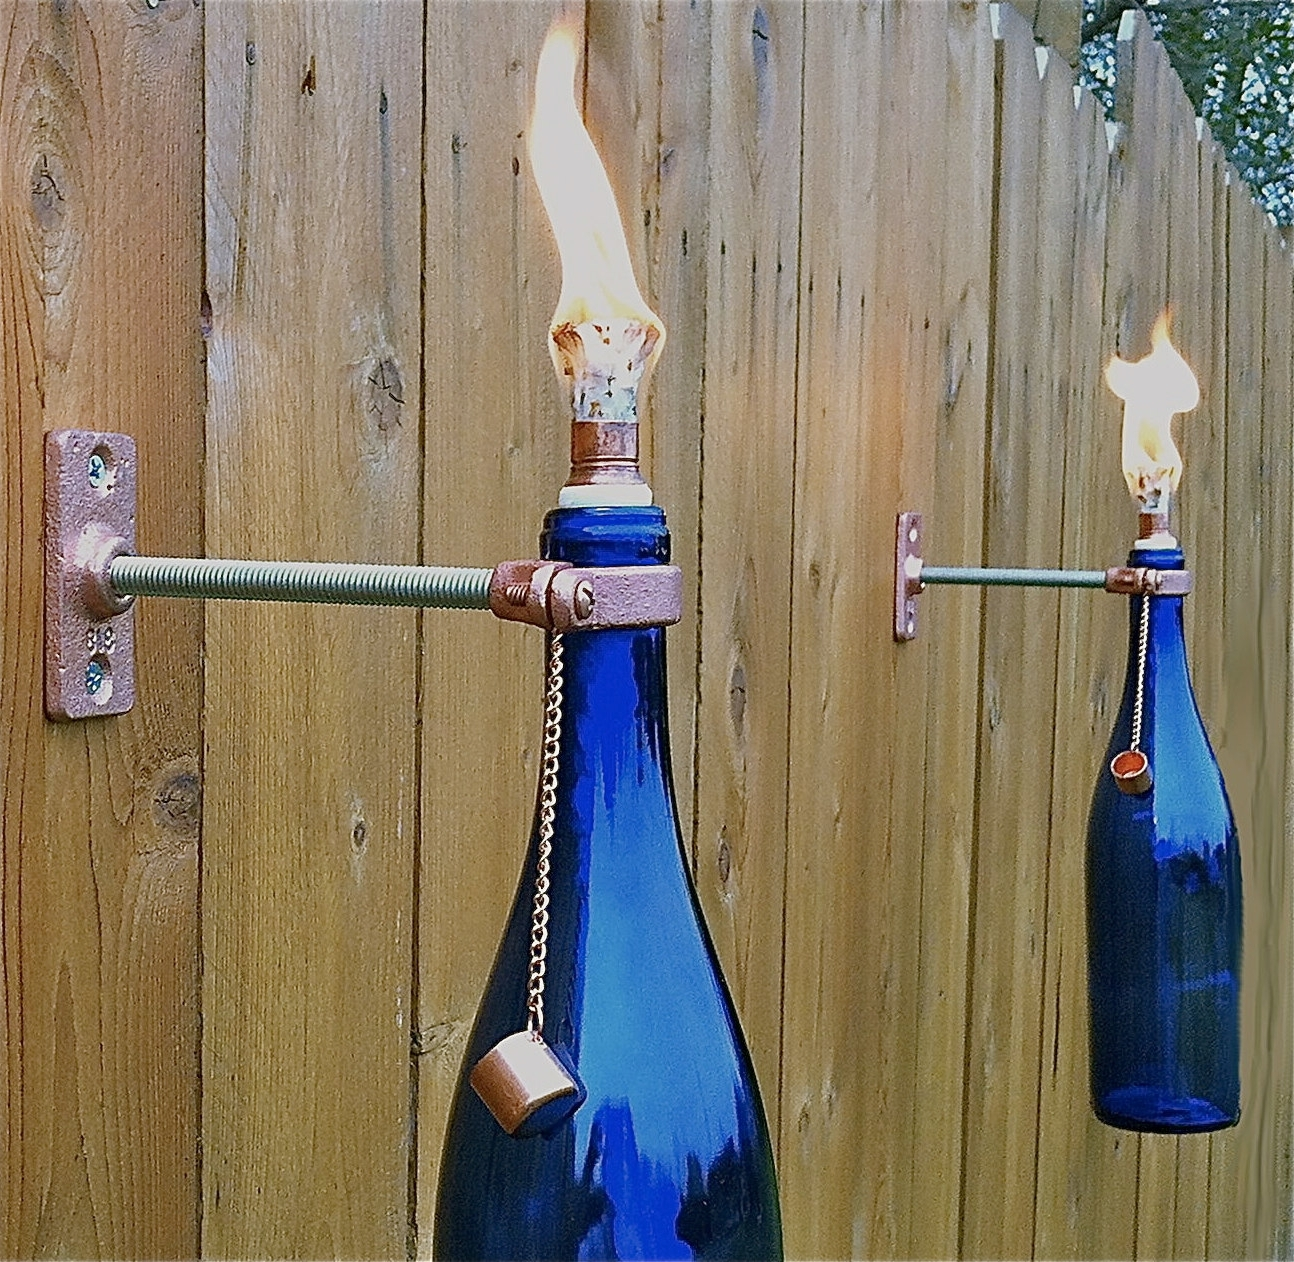 Outdoor Hanging Bottle Lights Within Widely Used Cobalt Blue Wine Bottle Tiki Torches Will Add Stylish Lighting To (View 14 of 20)